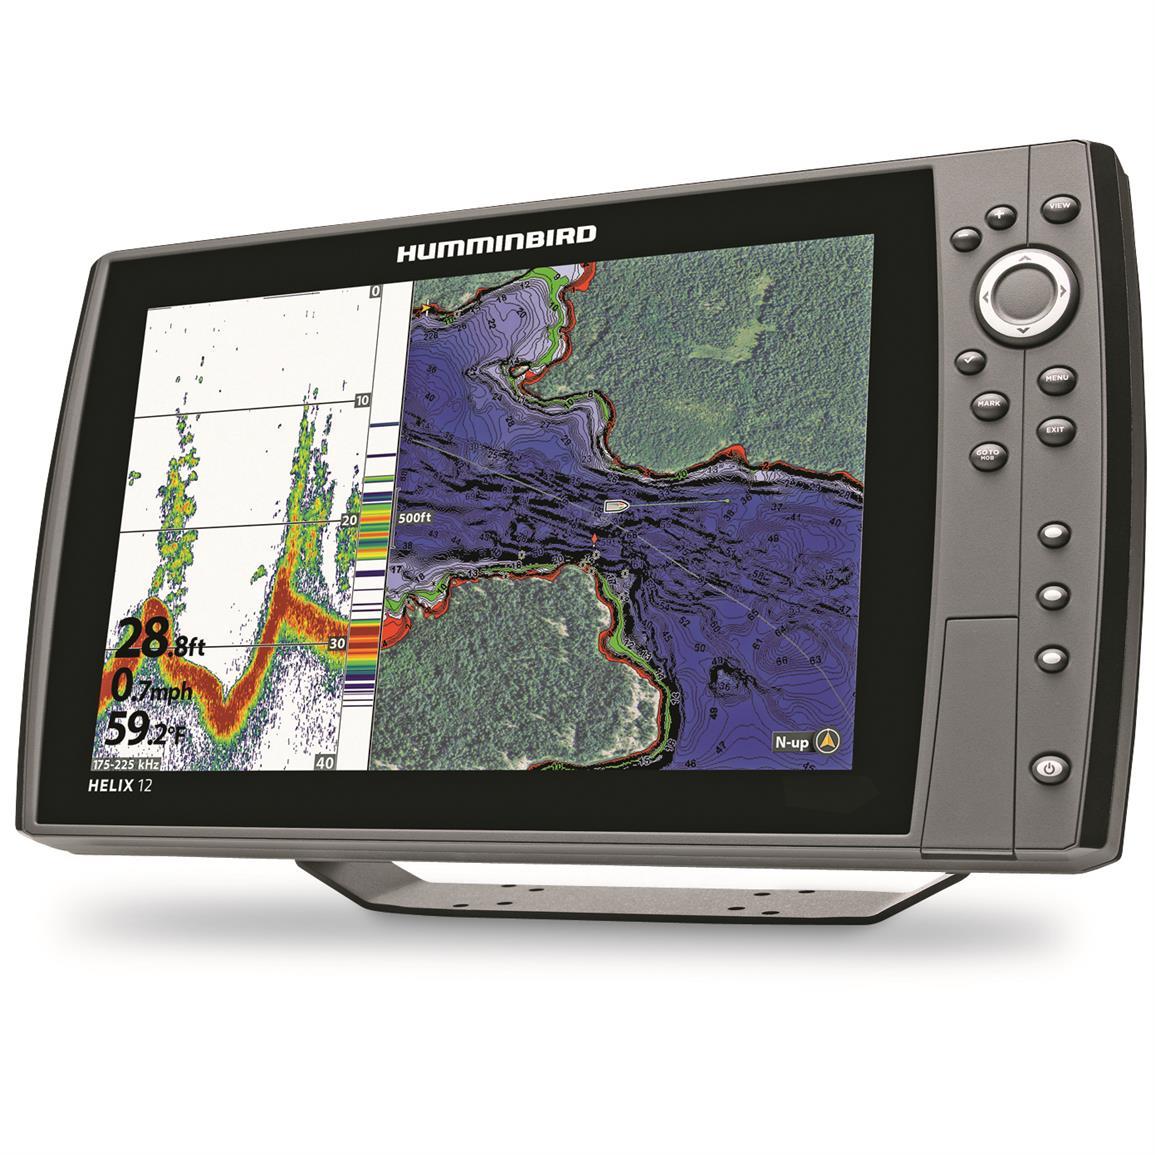 Humminbird helix 12 chirp gps g2n sonar fish finder for Humminbird fish finders